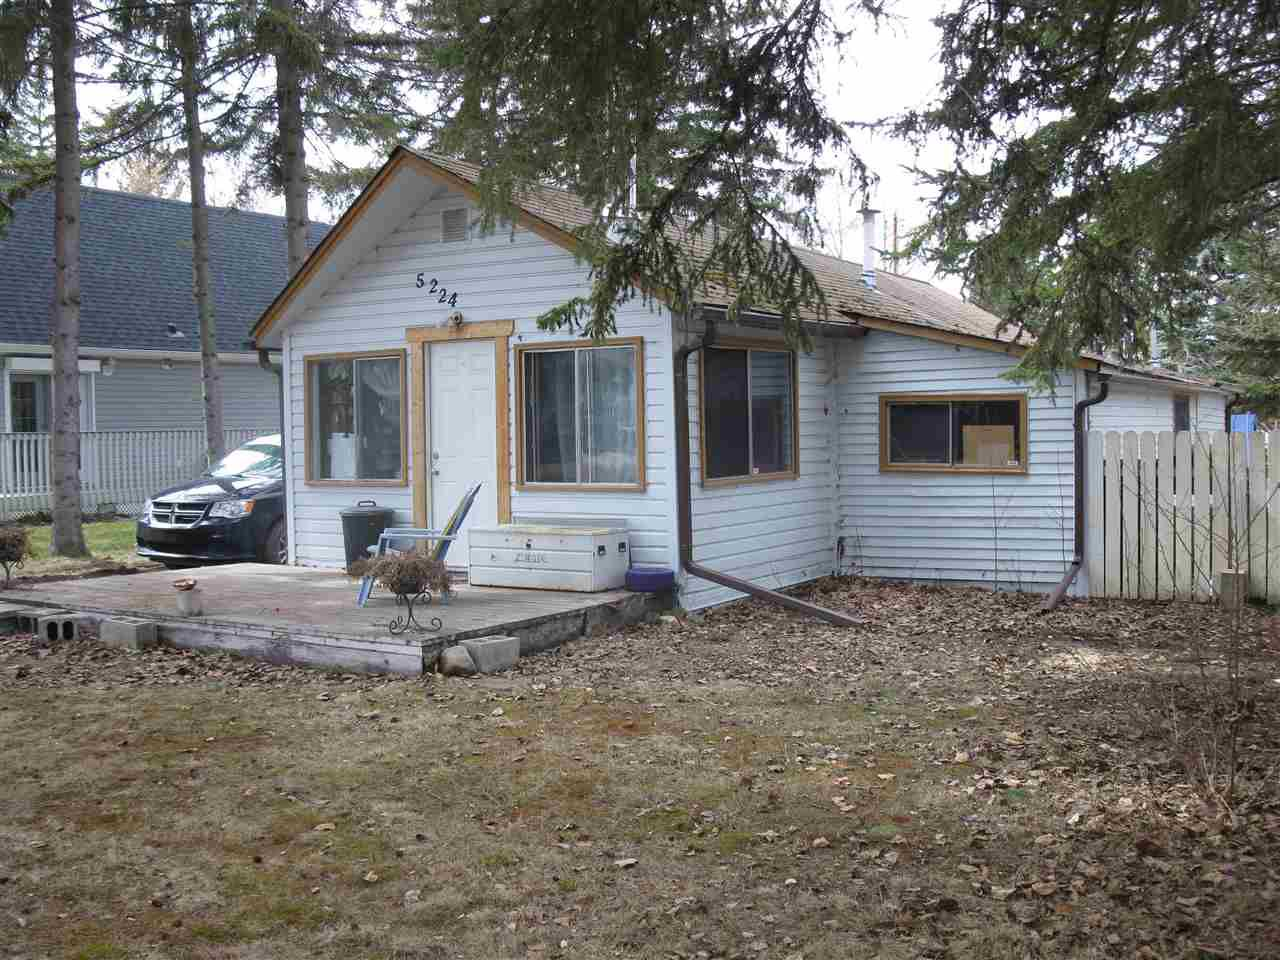 Main Photo: 5224 48 Ave: Rural Lac Ste. Anne County House for sale : MLS®# E4152474